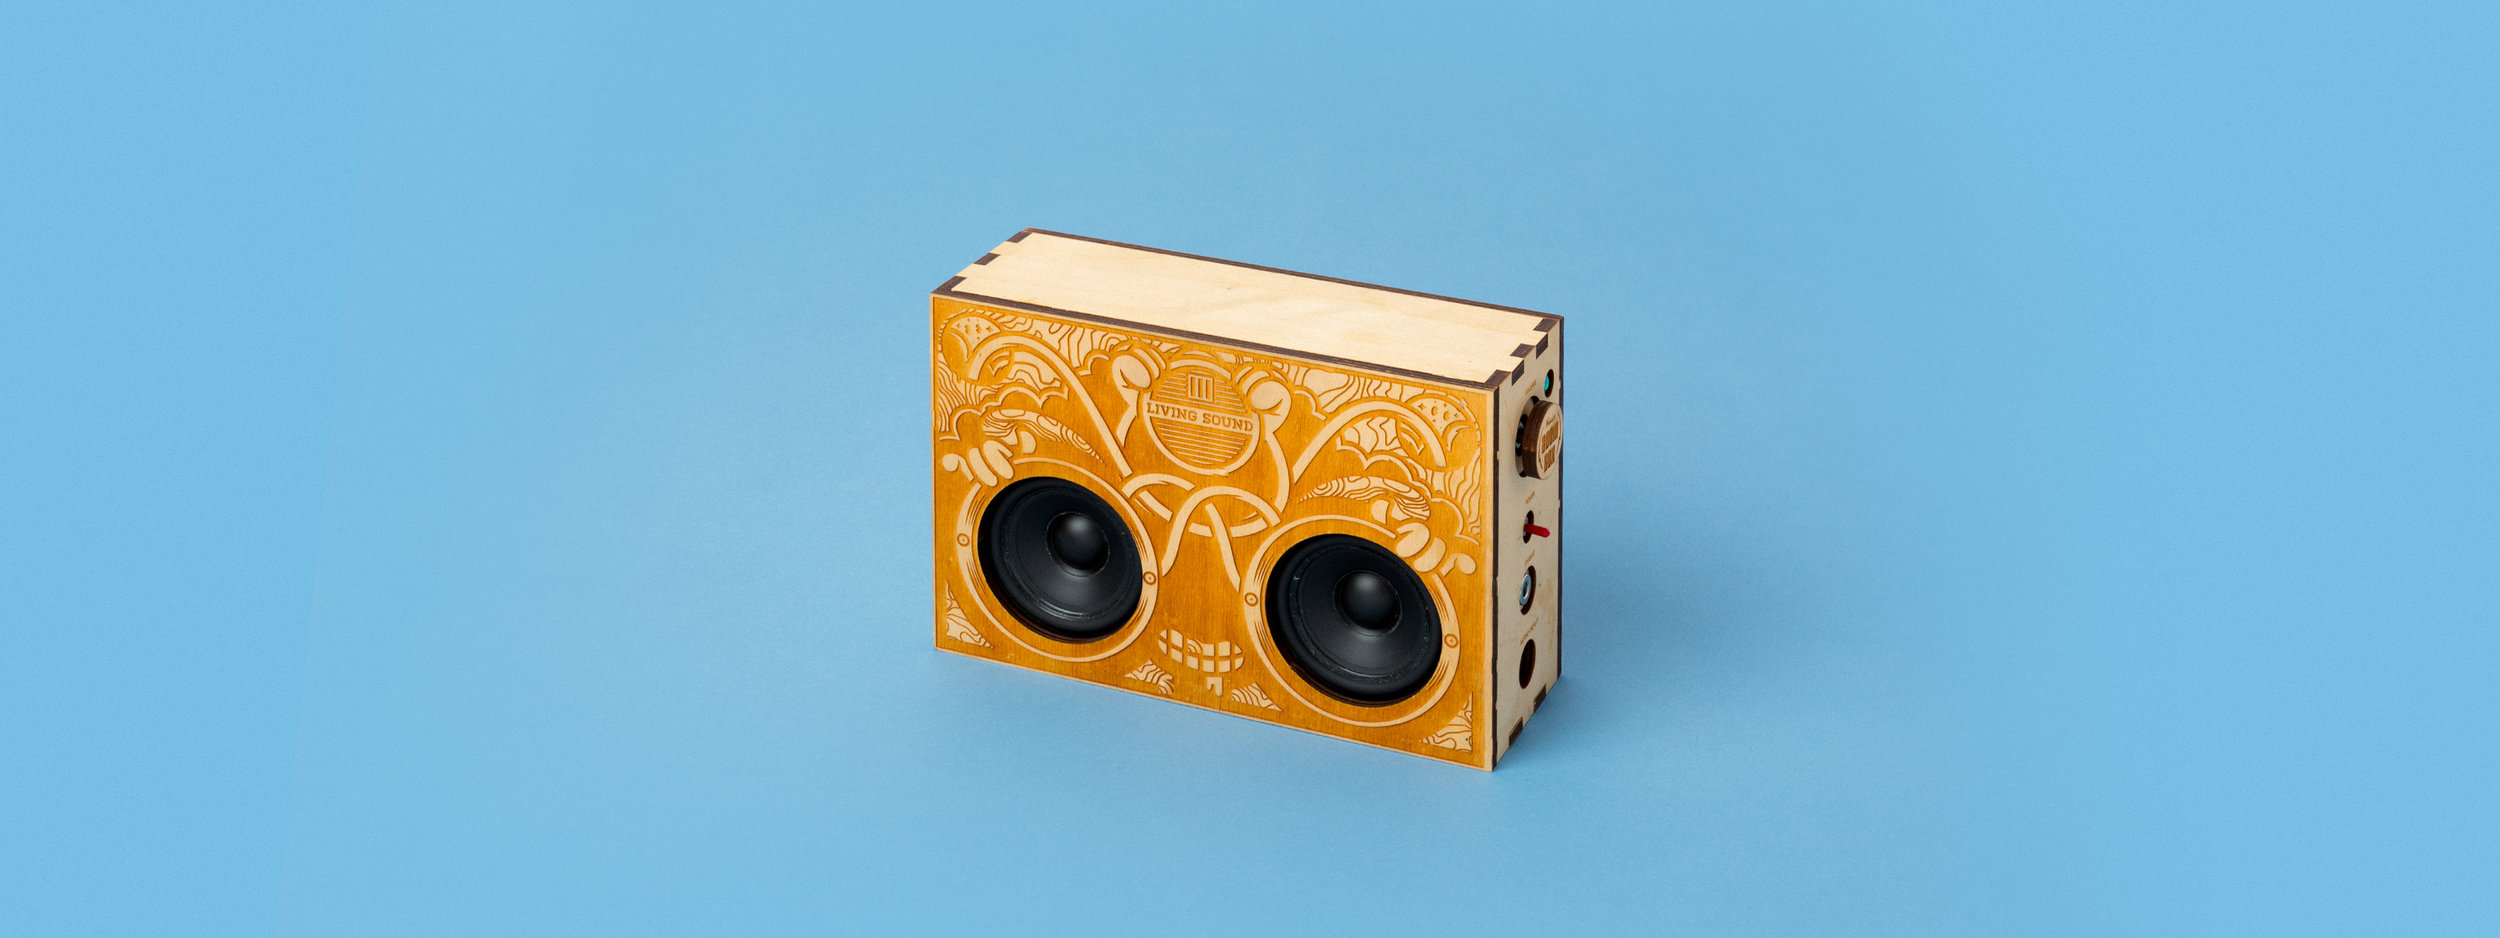 laser cut wood, laser engraved wood, finger joint box, boom box, blue tooth